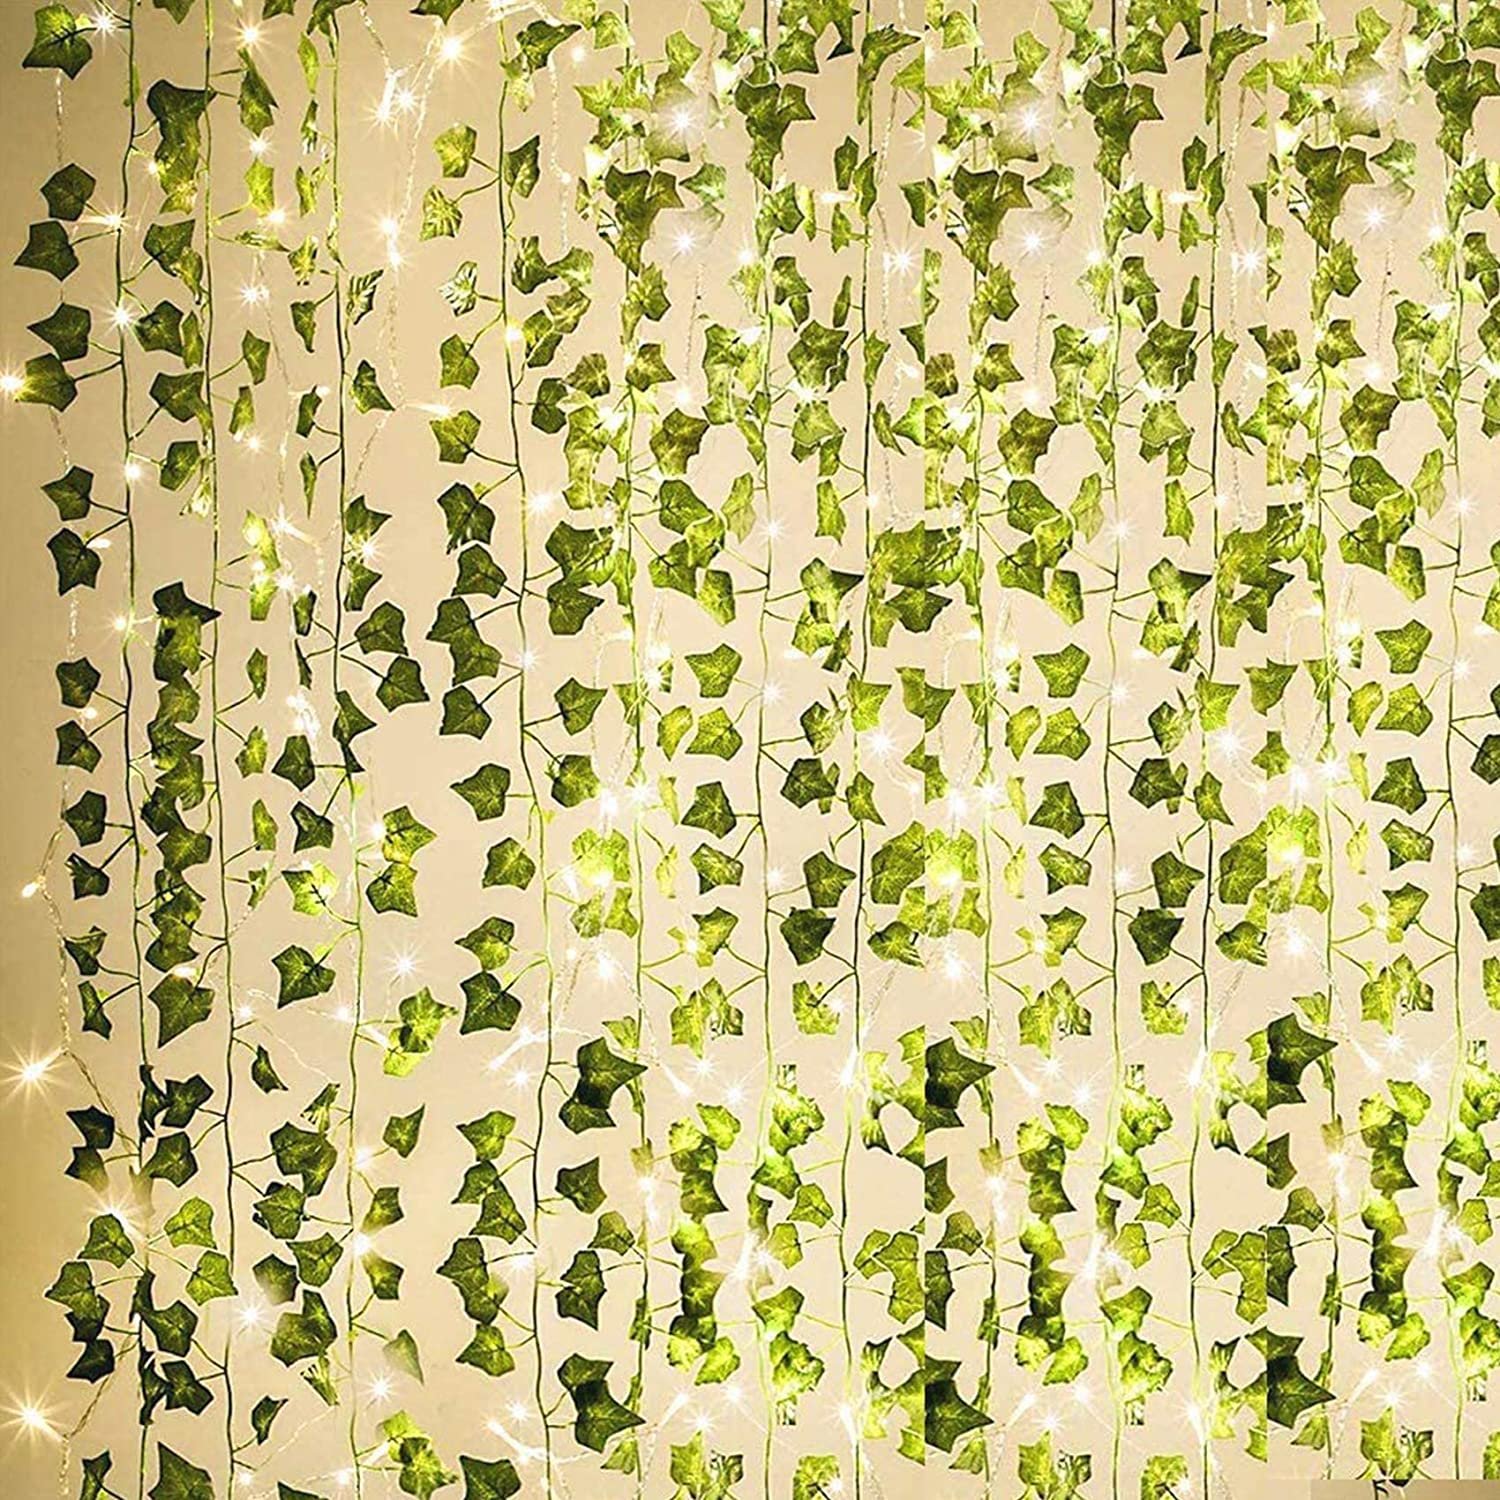 KASZOO 84Ft 12 Pack Artificial Ivy Garland Fake Plants, Vine Hanging Garland with 80 LED String Light, Hanging for Home Kitchen Garden Office Wedding Wall Decor, Green